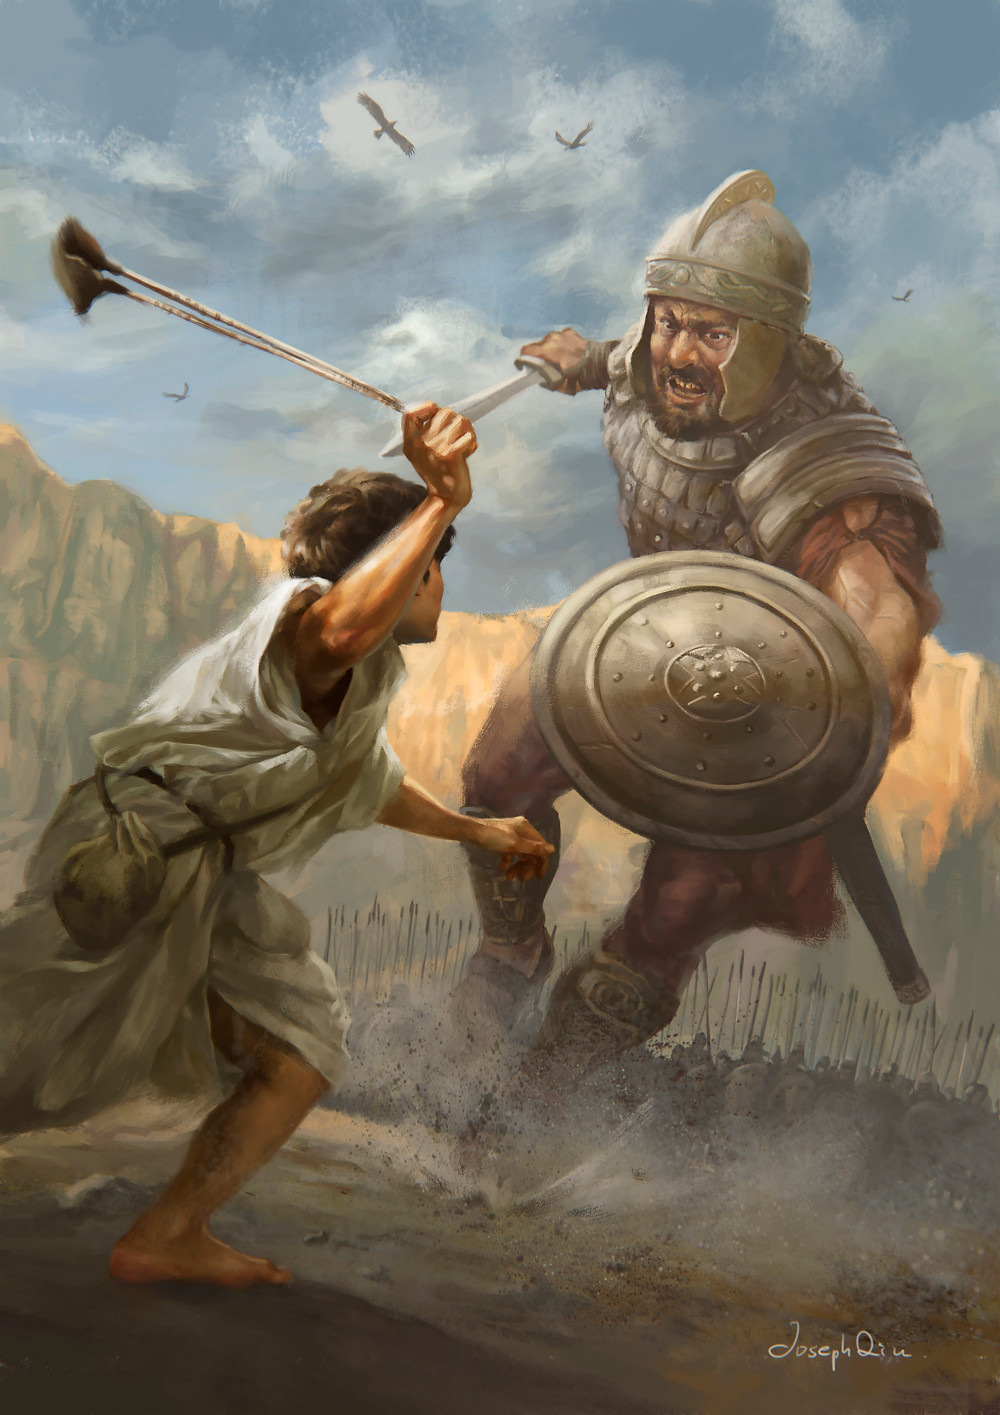 David and Goliath, Painting, fighting, boy and man